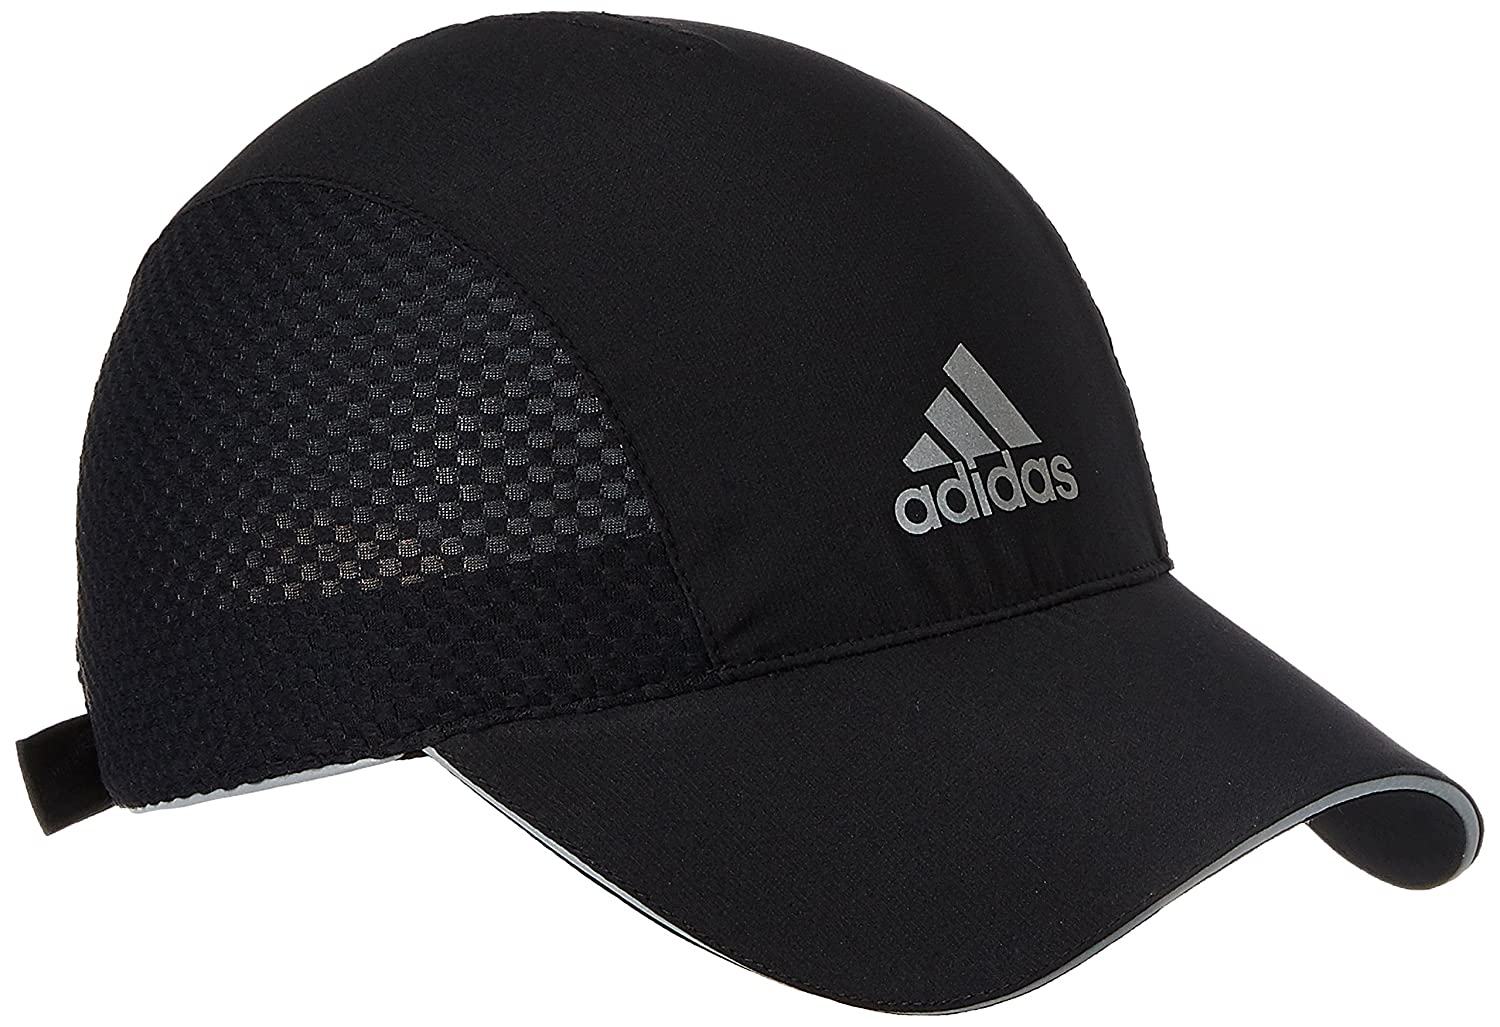 66b9f45a813 adidas ClimaCool Women s Baseball Cap - Black Reflective Silver Silver  Reflective FR  56 (Manufacturer Size  56 cm)  adidas  Amazon.co.uk  Sports    Outdoors